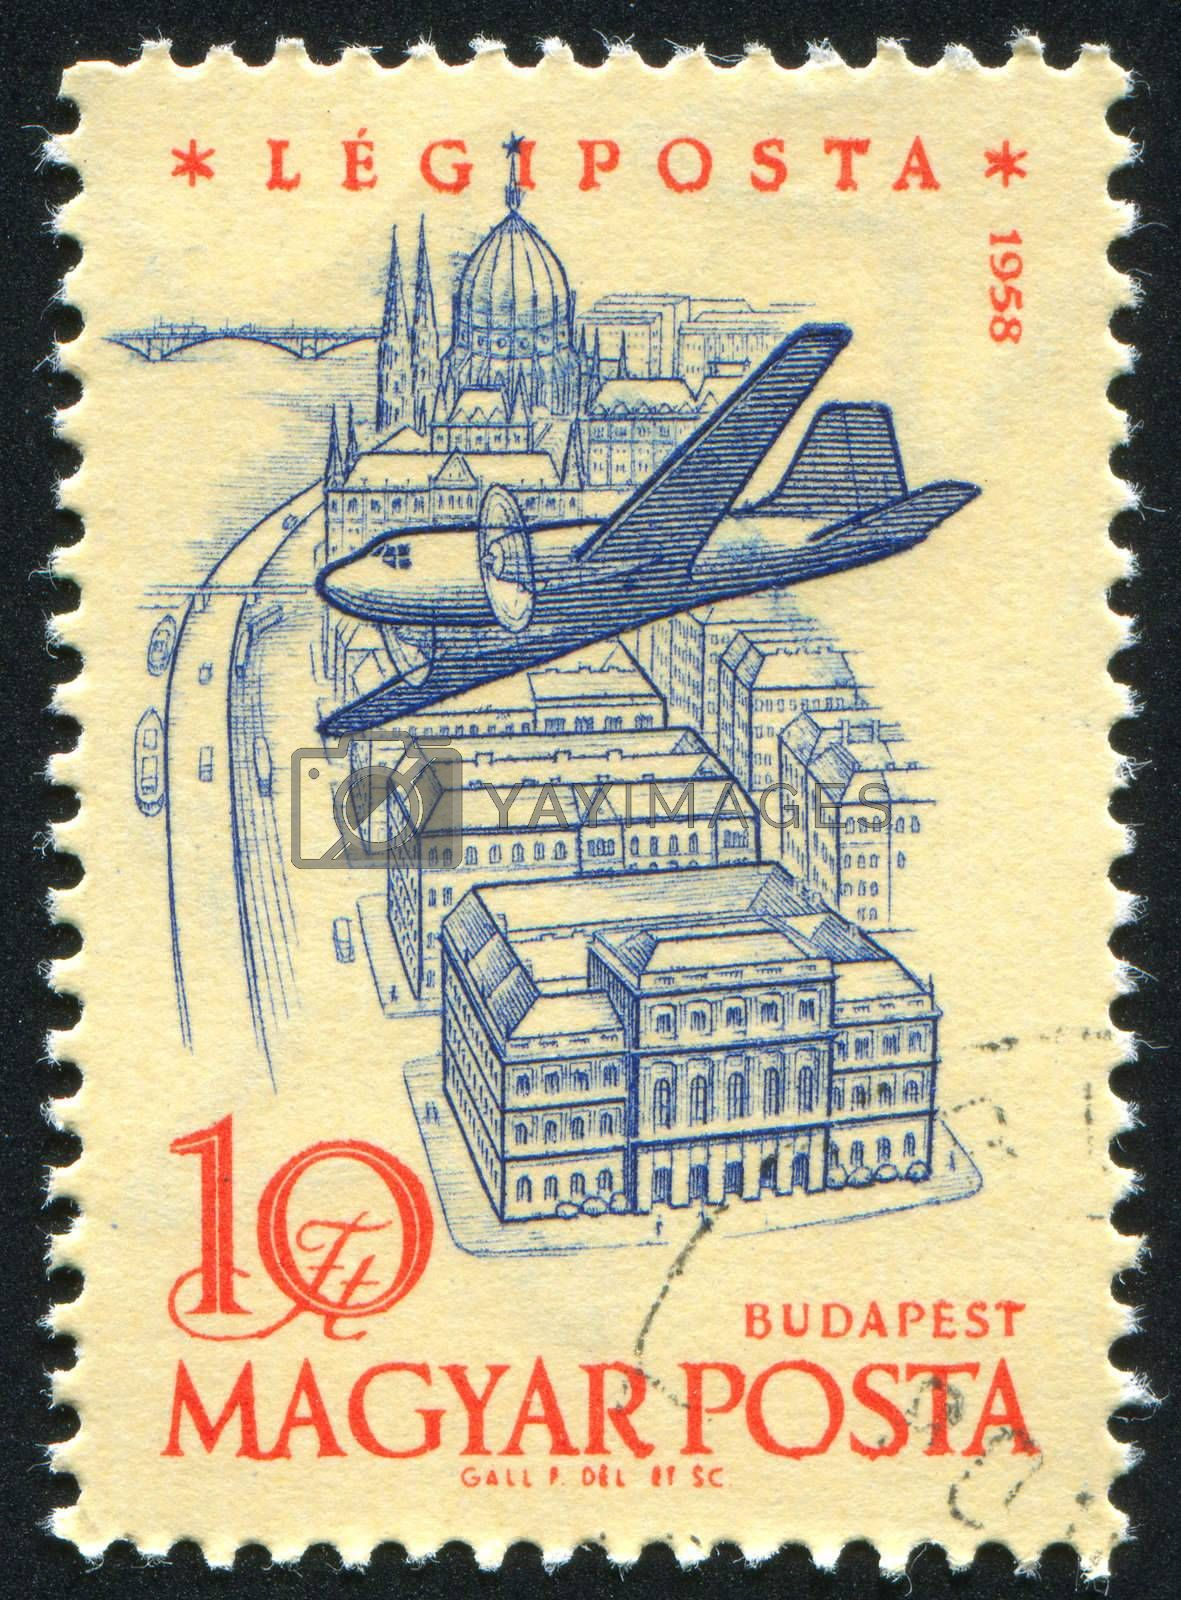 HUNGARY - CIRCA 1958: stamp printed by Hungary, shows Plane over Budapest, Academy of Science and Parliament, circa 1958